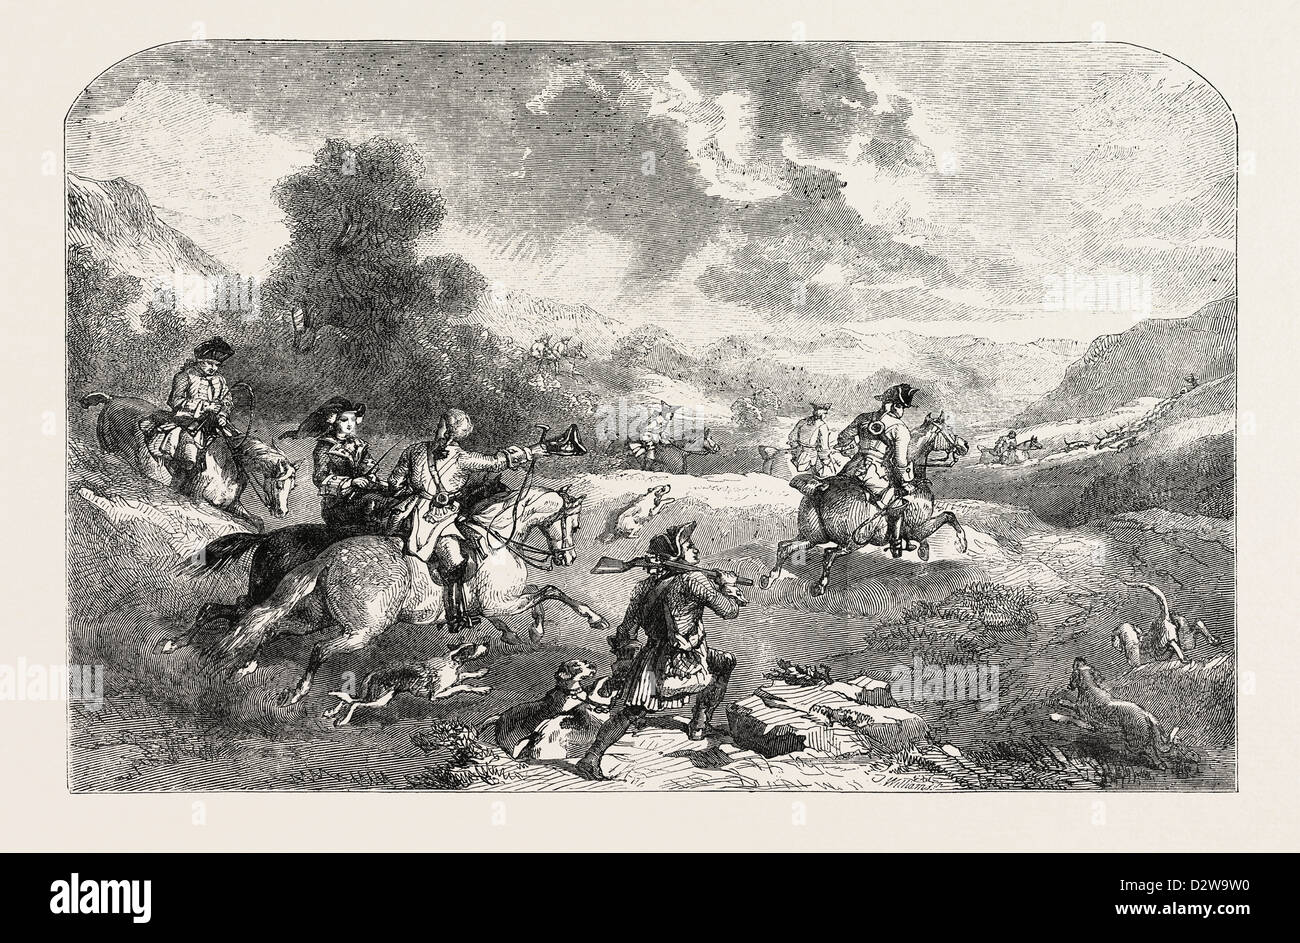 STAG-HUNTING IN THE REIGN OF GEORGE II. FROM A PAINTING BY FREDERICK TAYLER - Stock Image